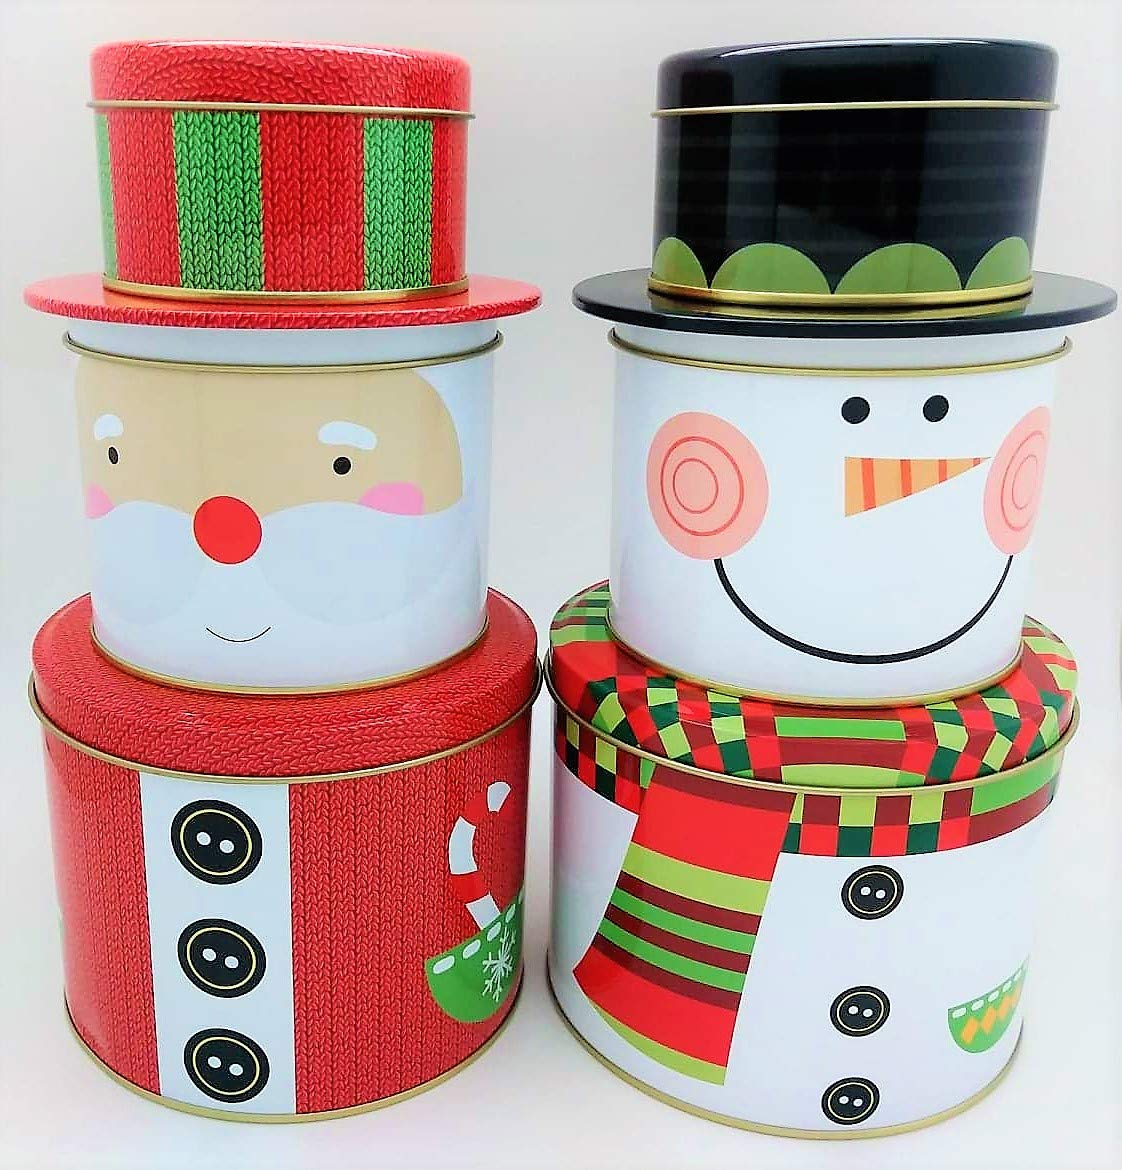 ALEF Christmas/Holiday Decorative Stacking Tins (2 Pack)